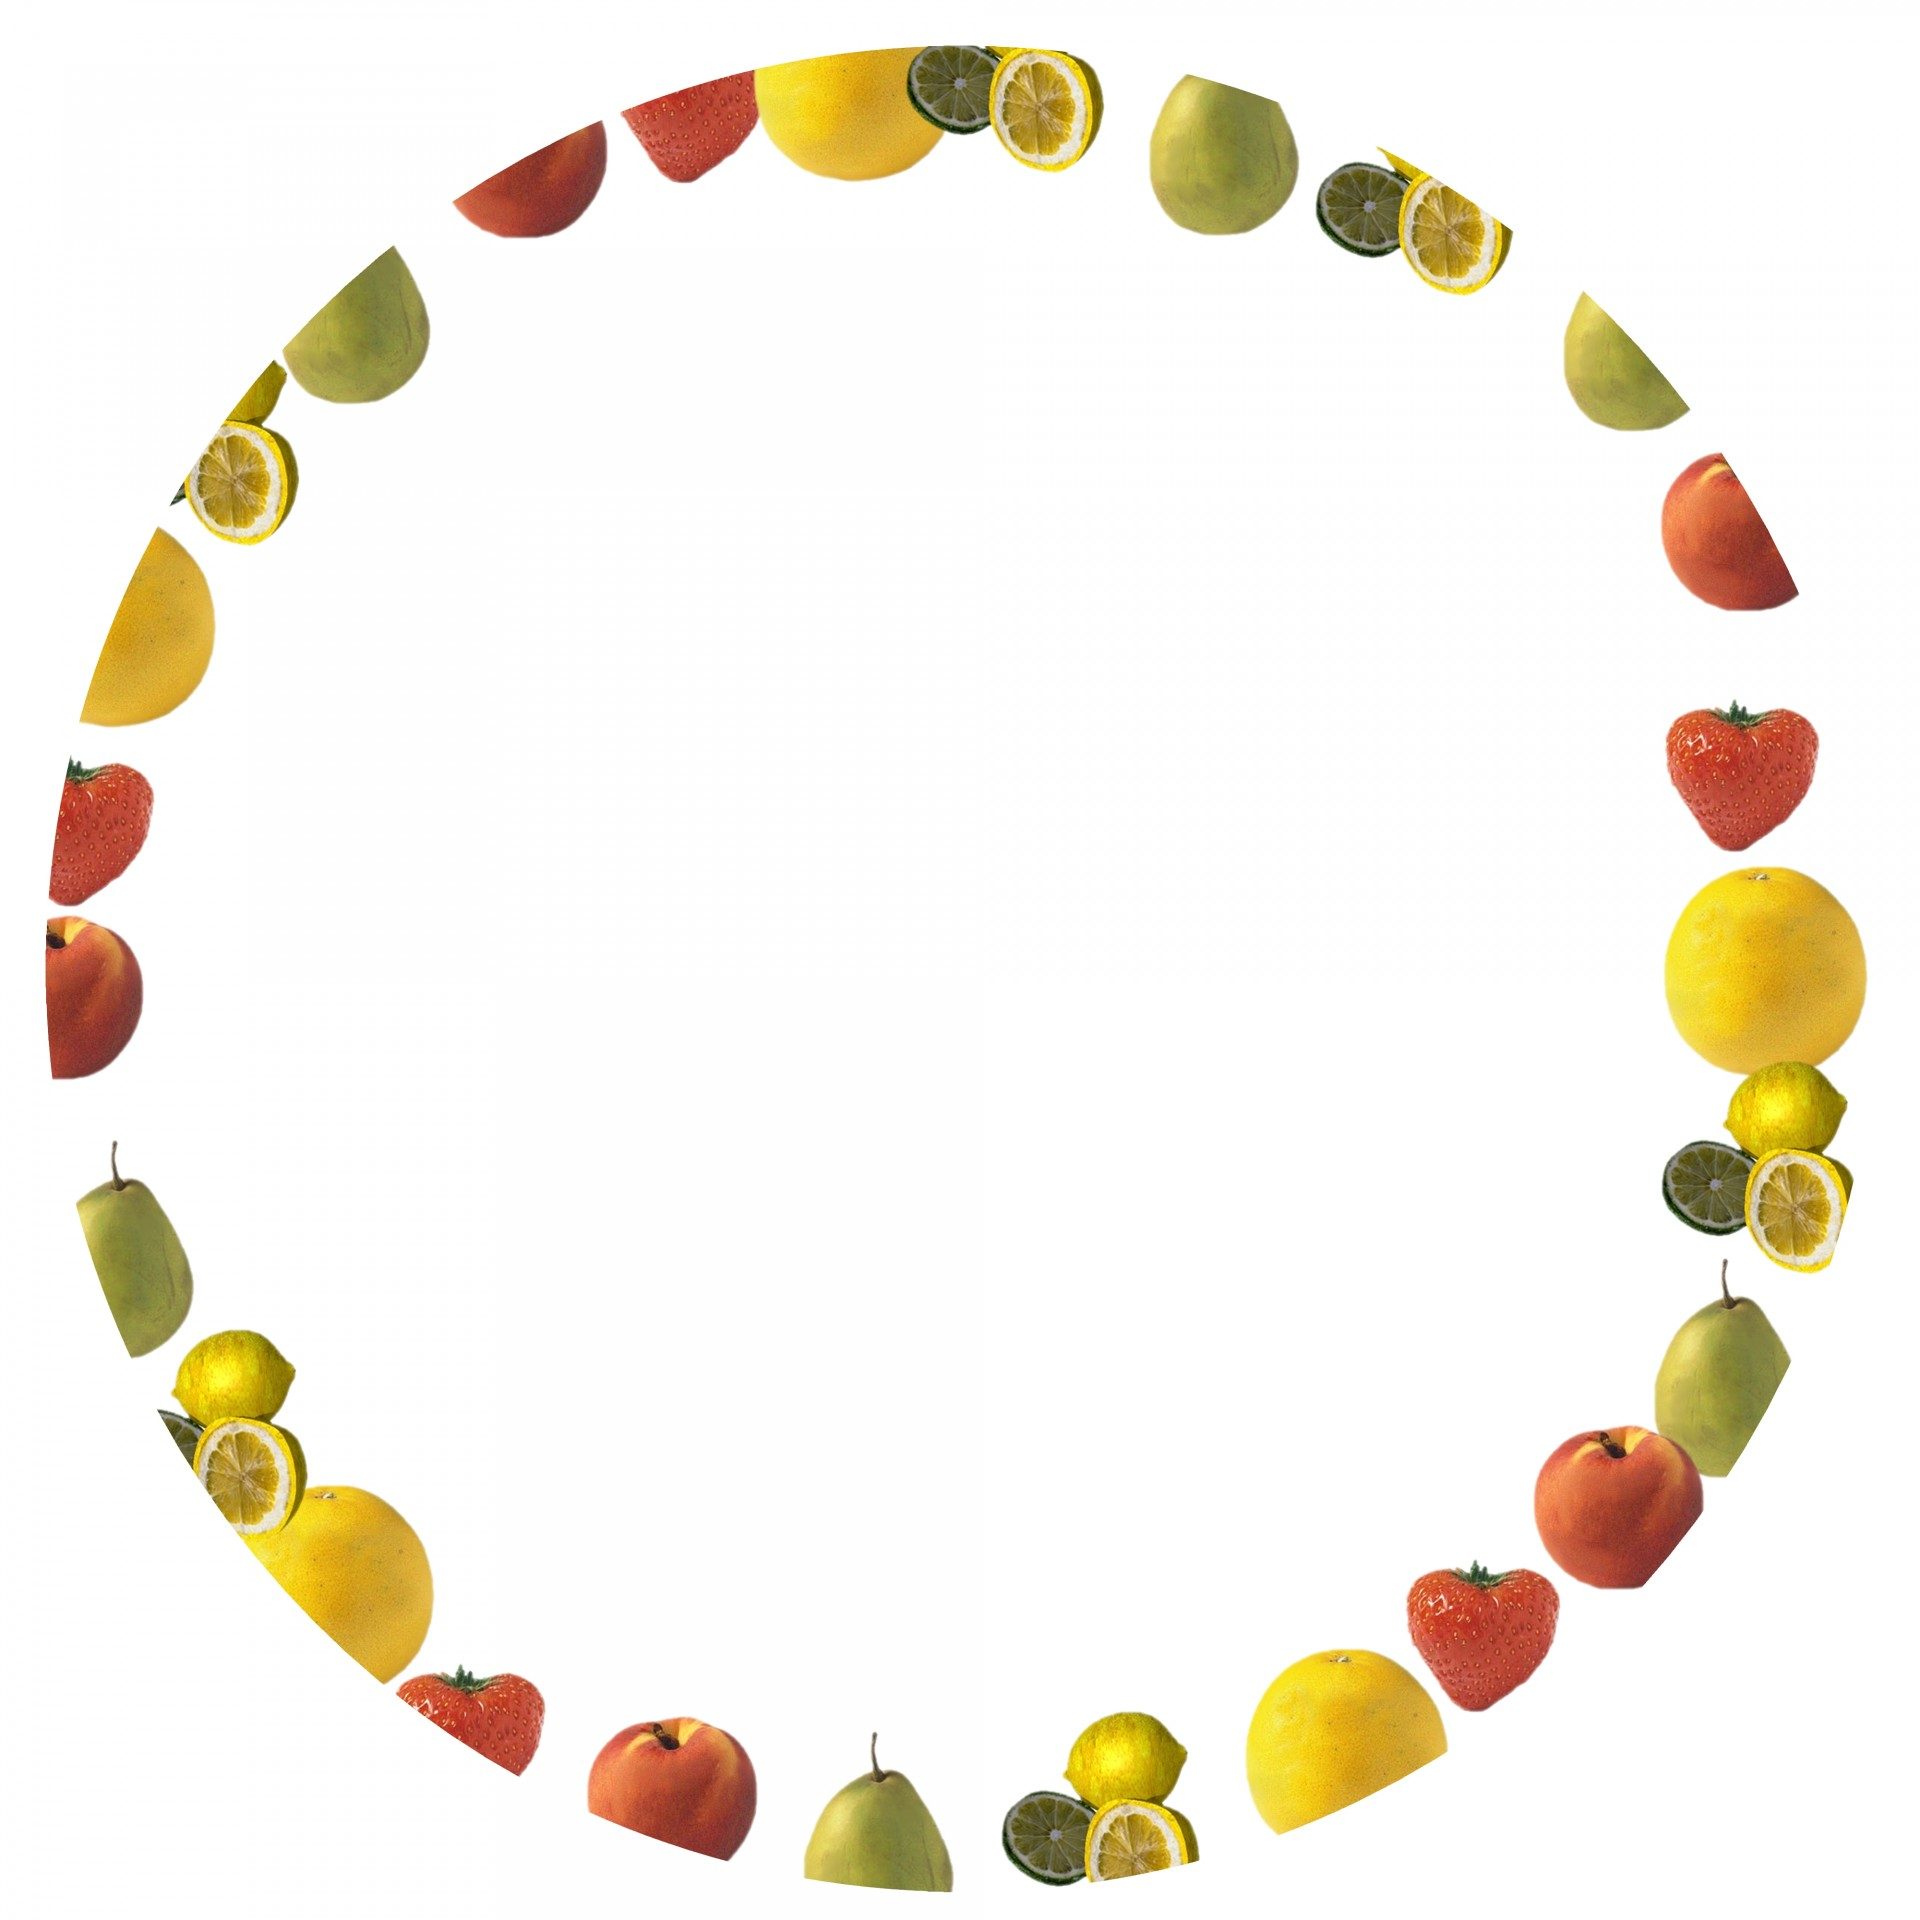 Fruit Frame Free Stock Photo - Public Domain Pictures